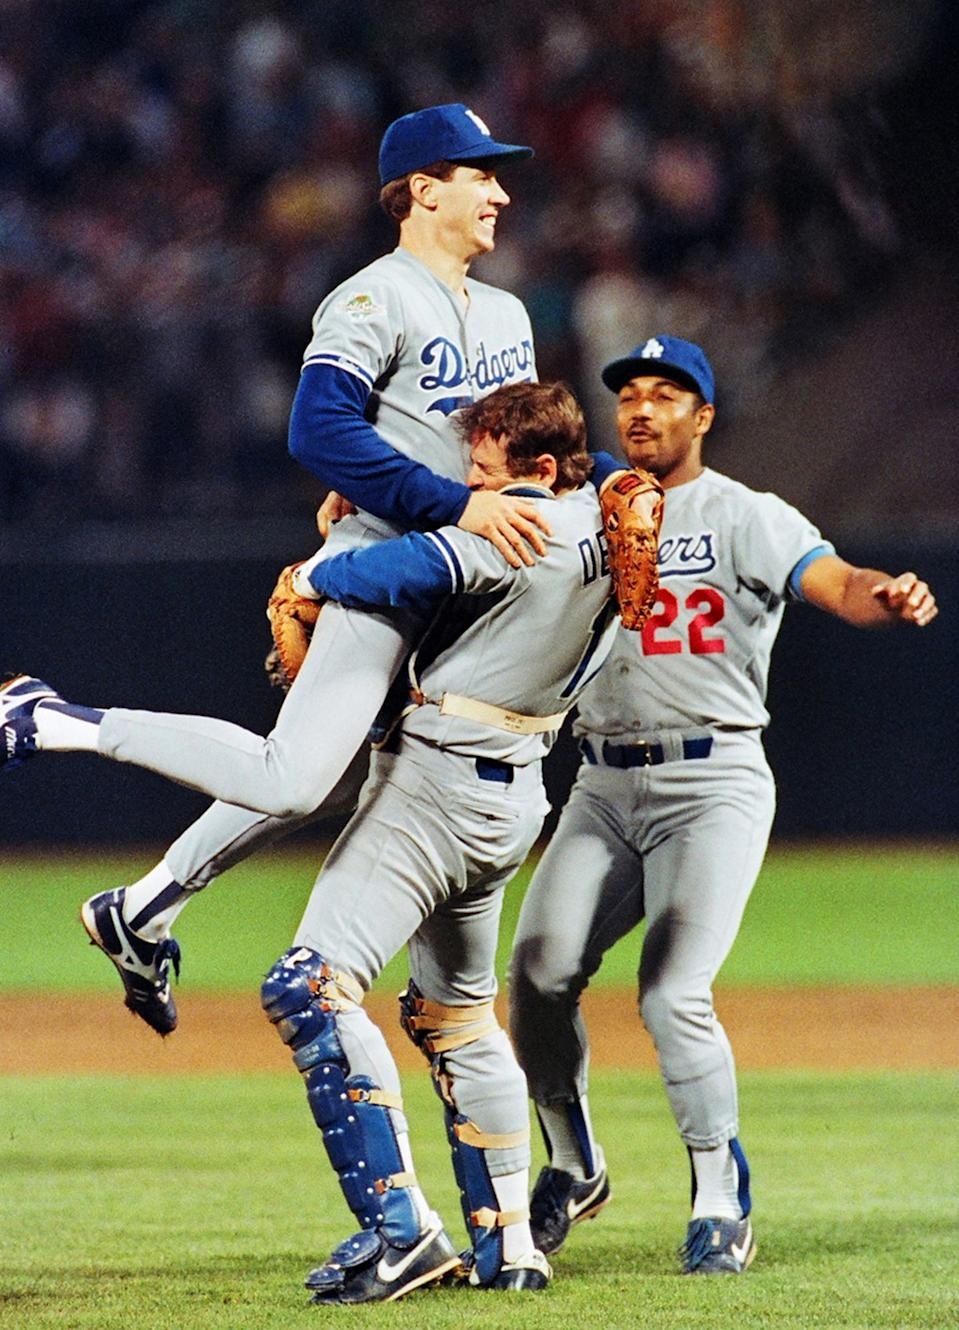 Dodgers starting pitcher Orel Hershiser leaps into the arms of catcher Rick Dempsey to celebrate title.